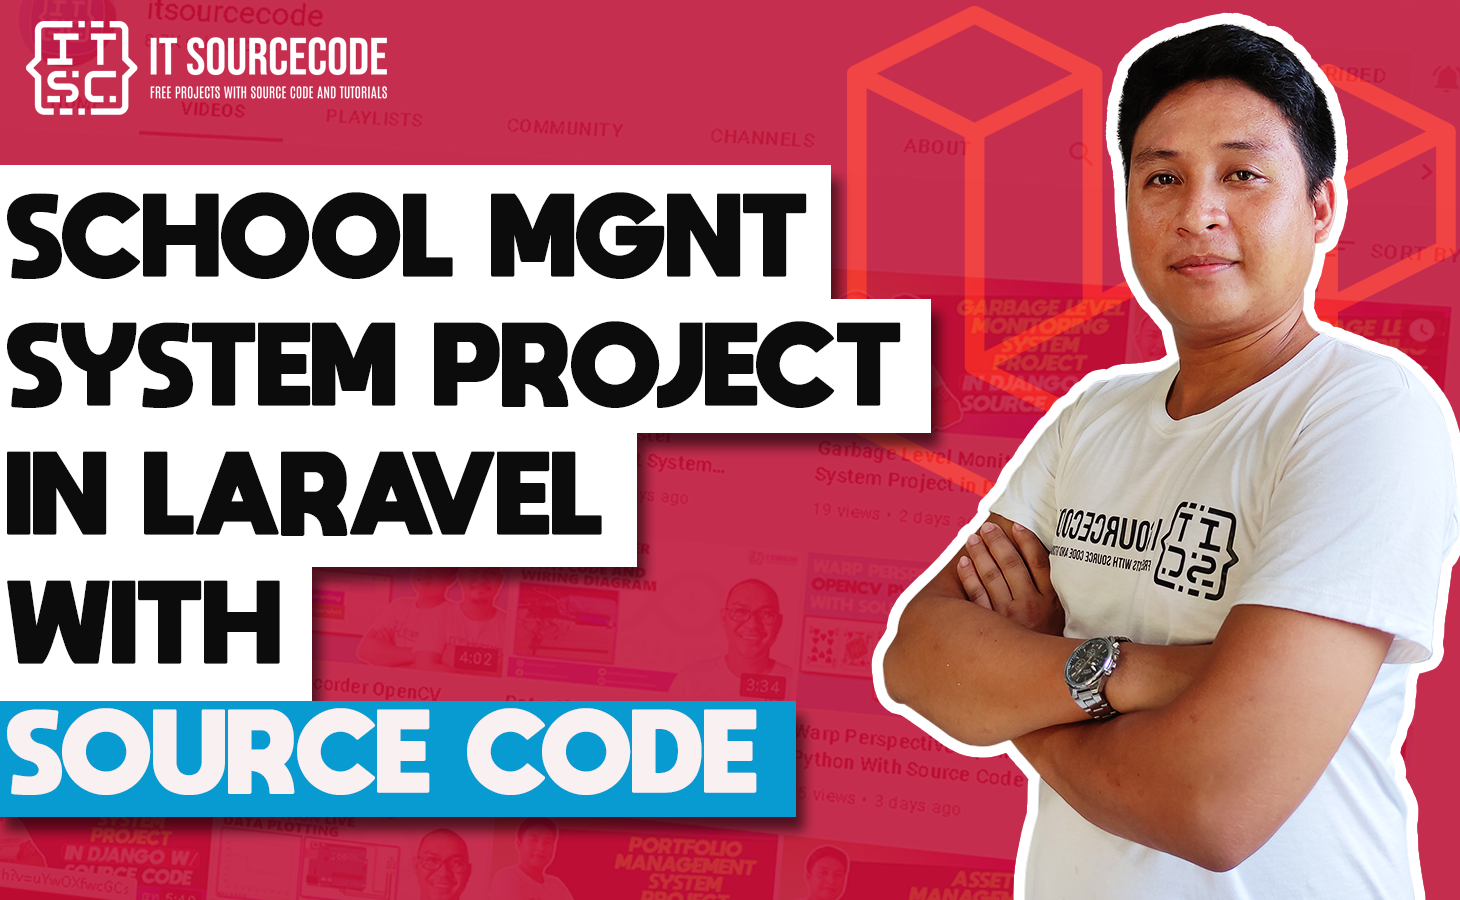 School Management System Project in Laravel With Source Code